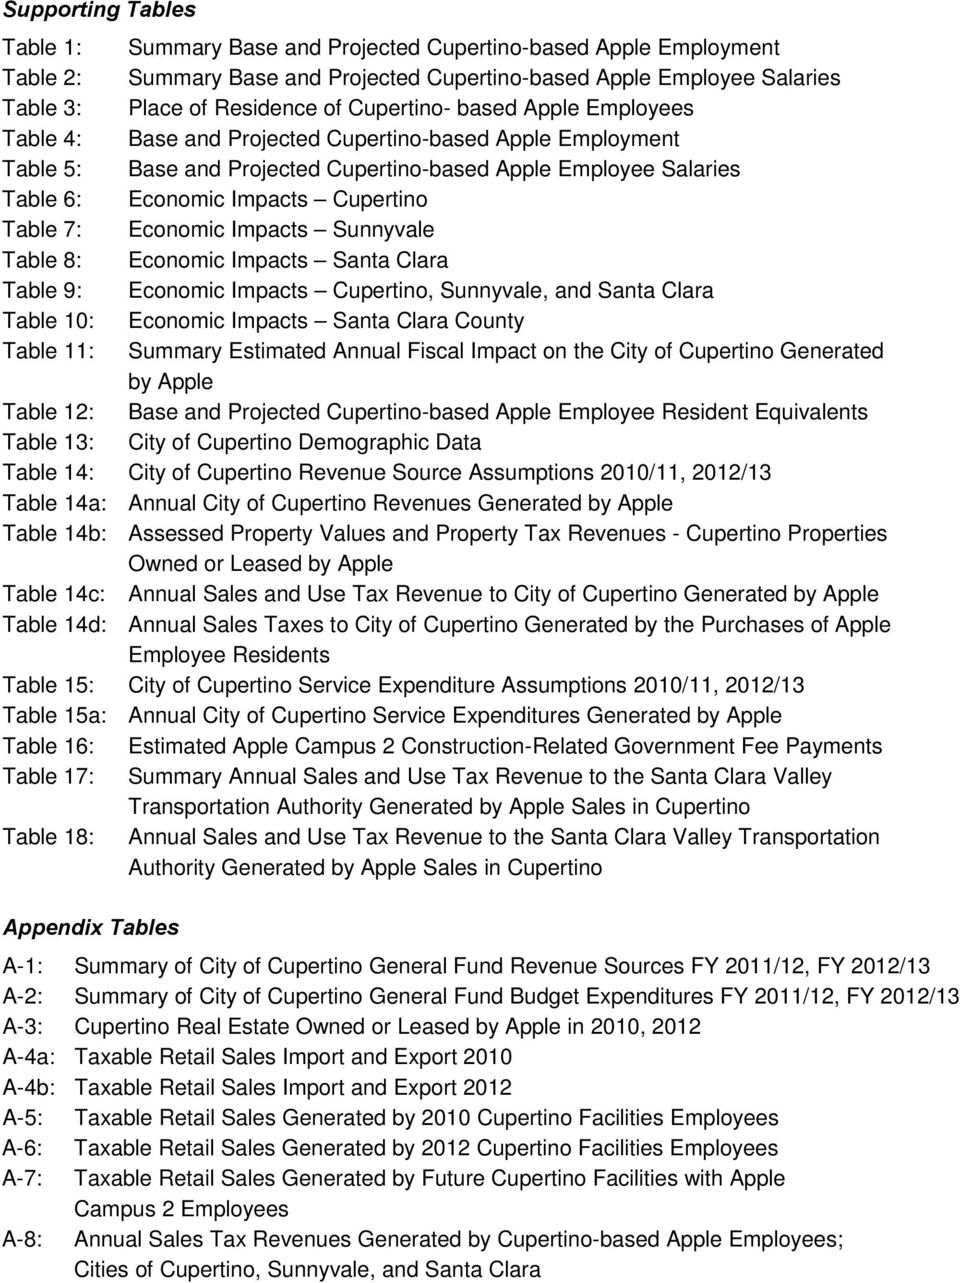 Santa Clara Table 9: Economic Impacts, Sunnyvale, and Santa Clara Table 10: Economic Impacts Santa Clara County Table 11: Summary Estimated Annual Fiscal Impact on the City of Generated by Apple